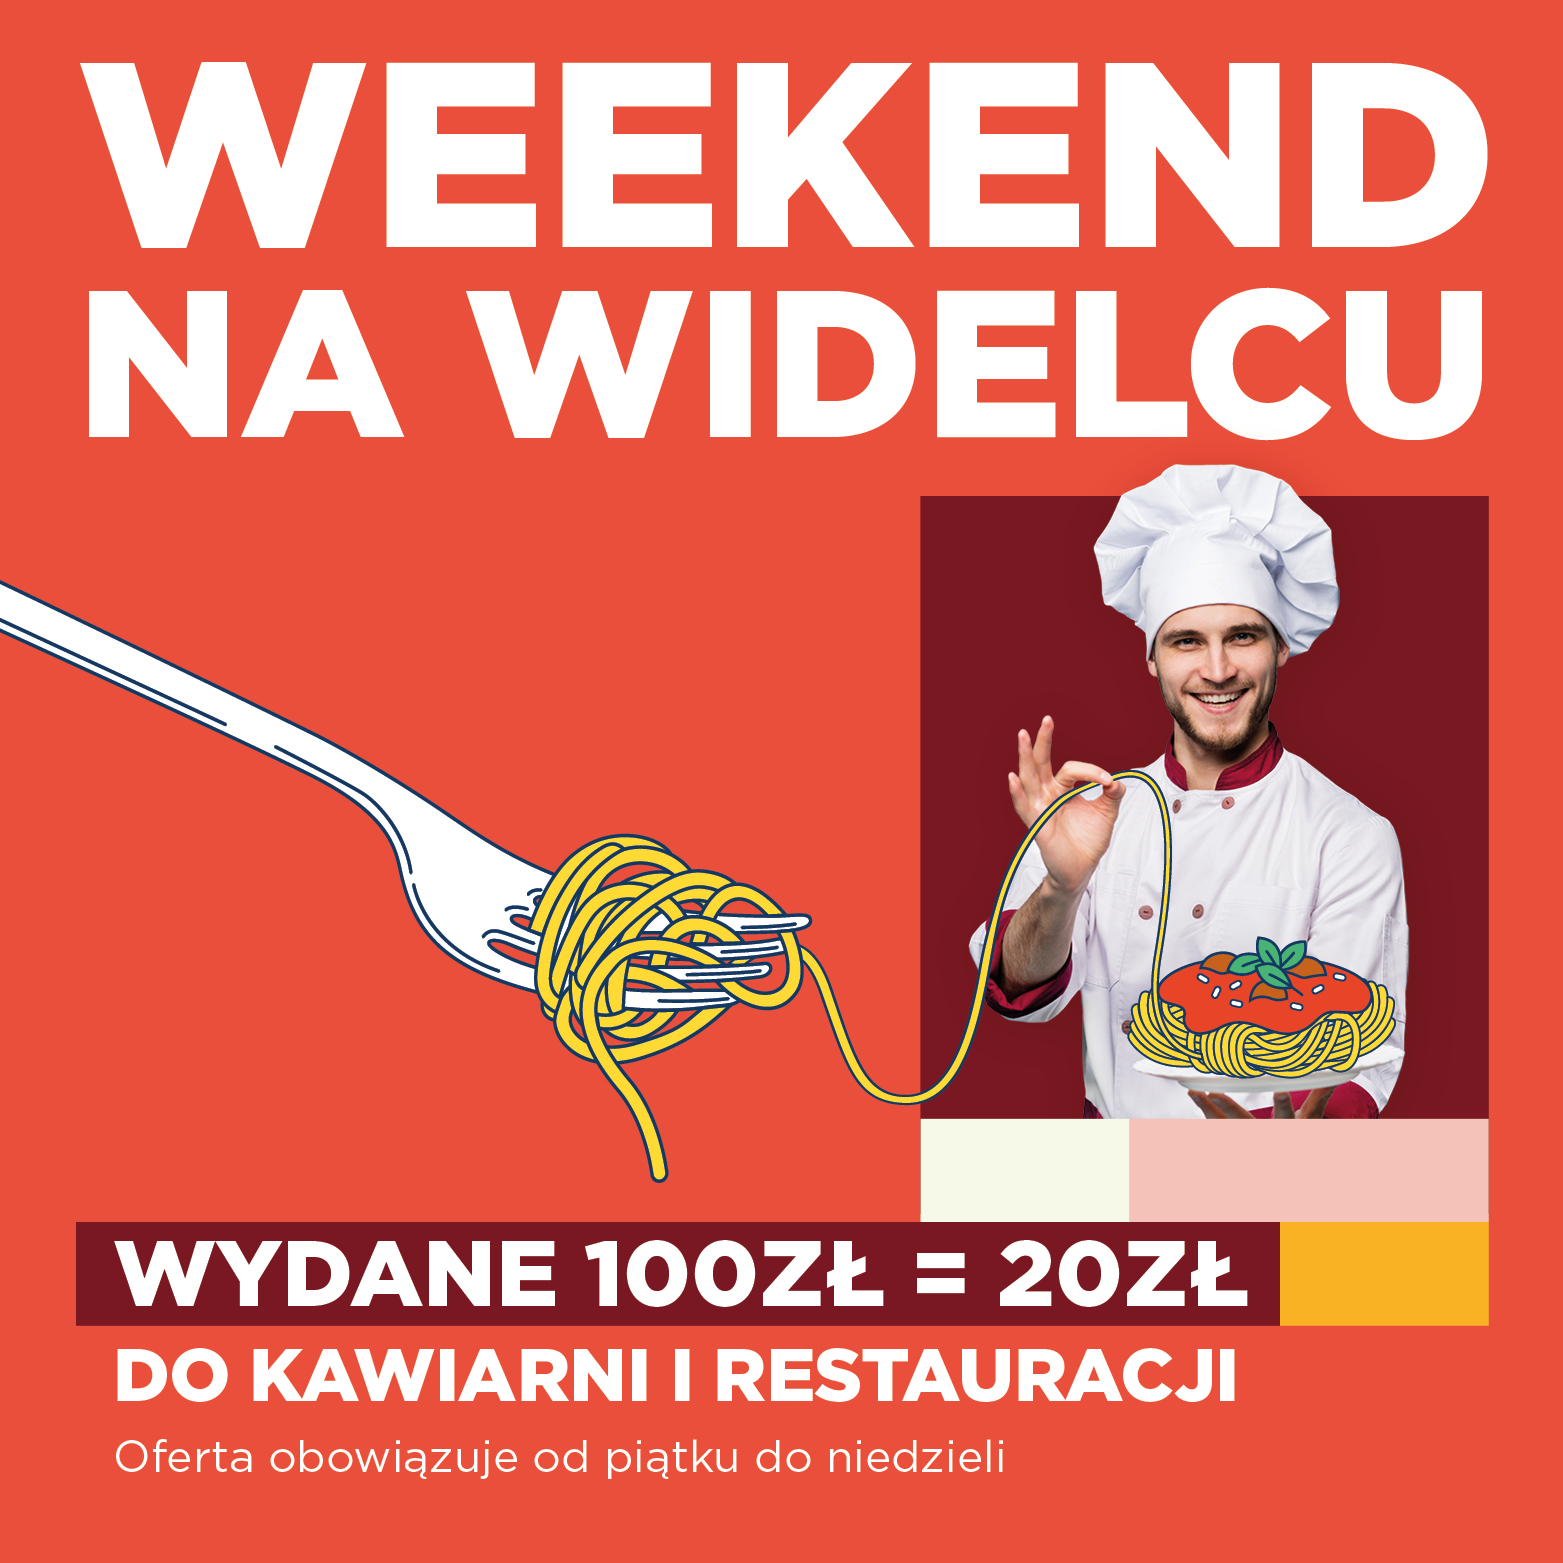 Weekend na Widelcu